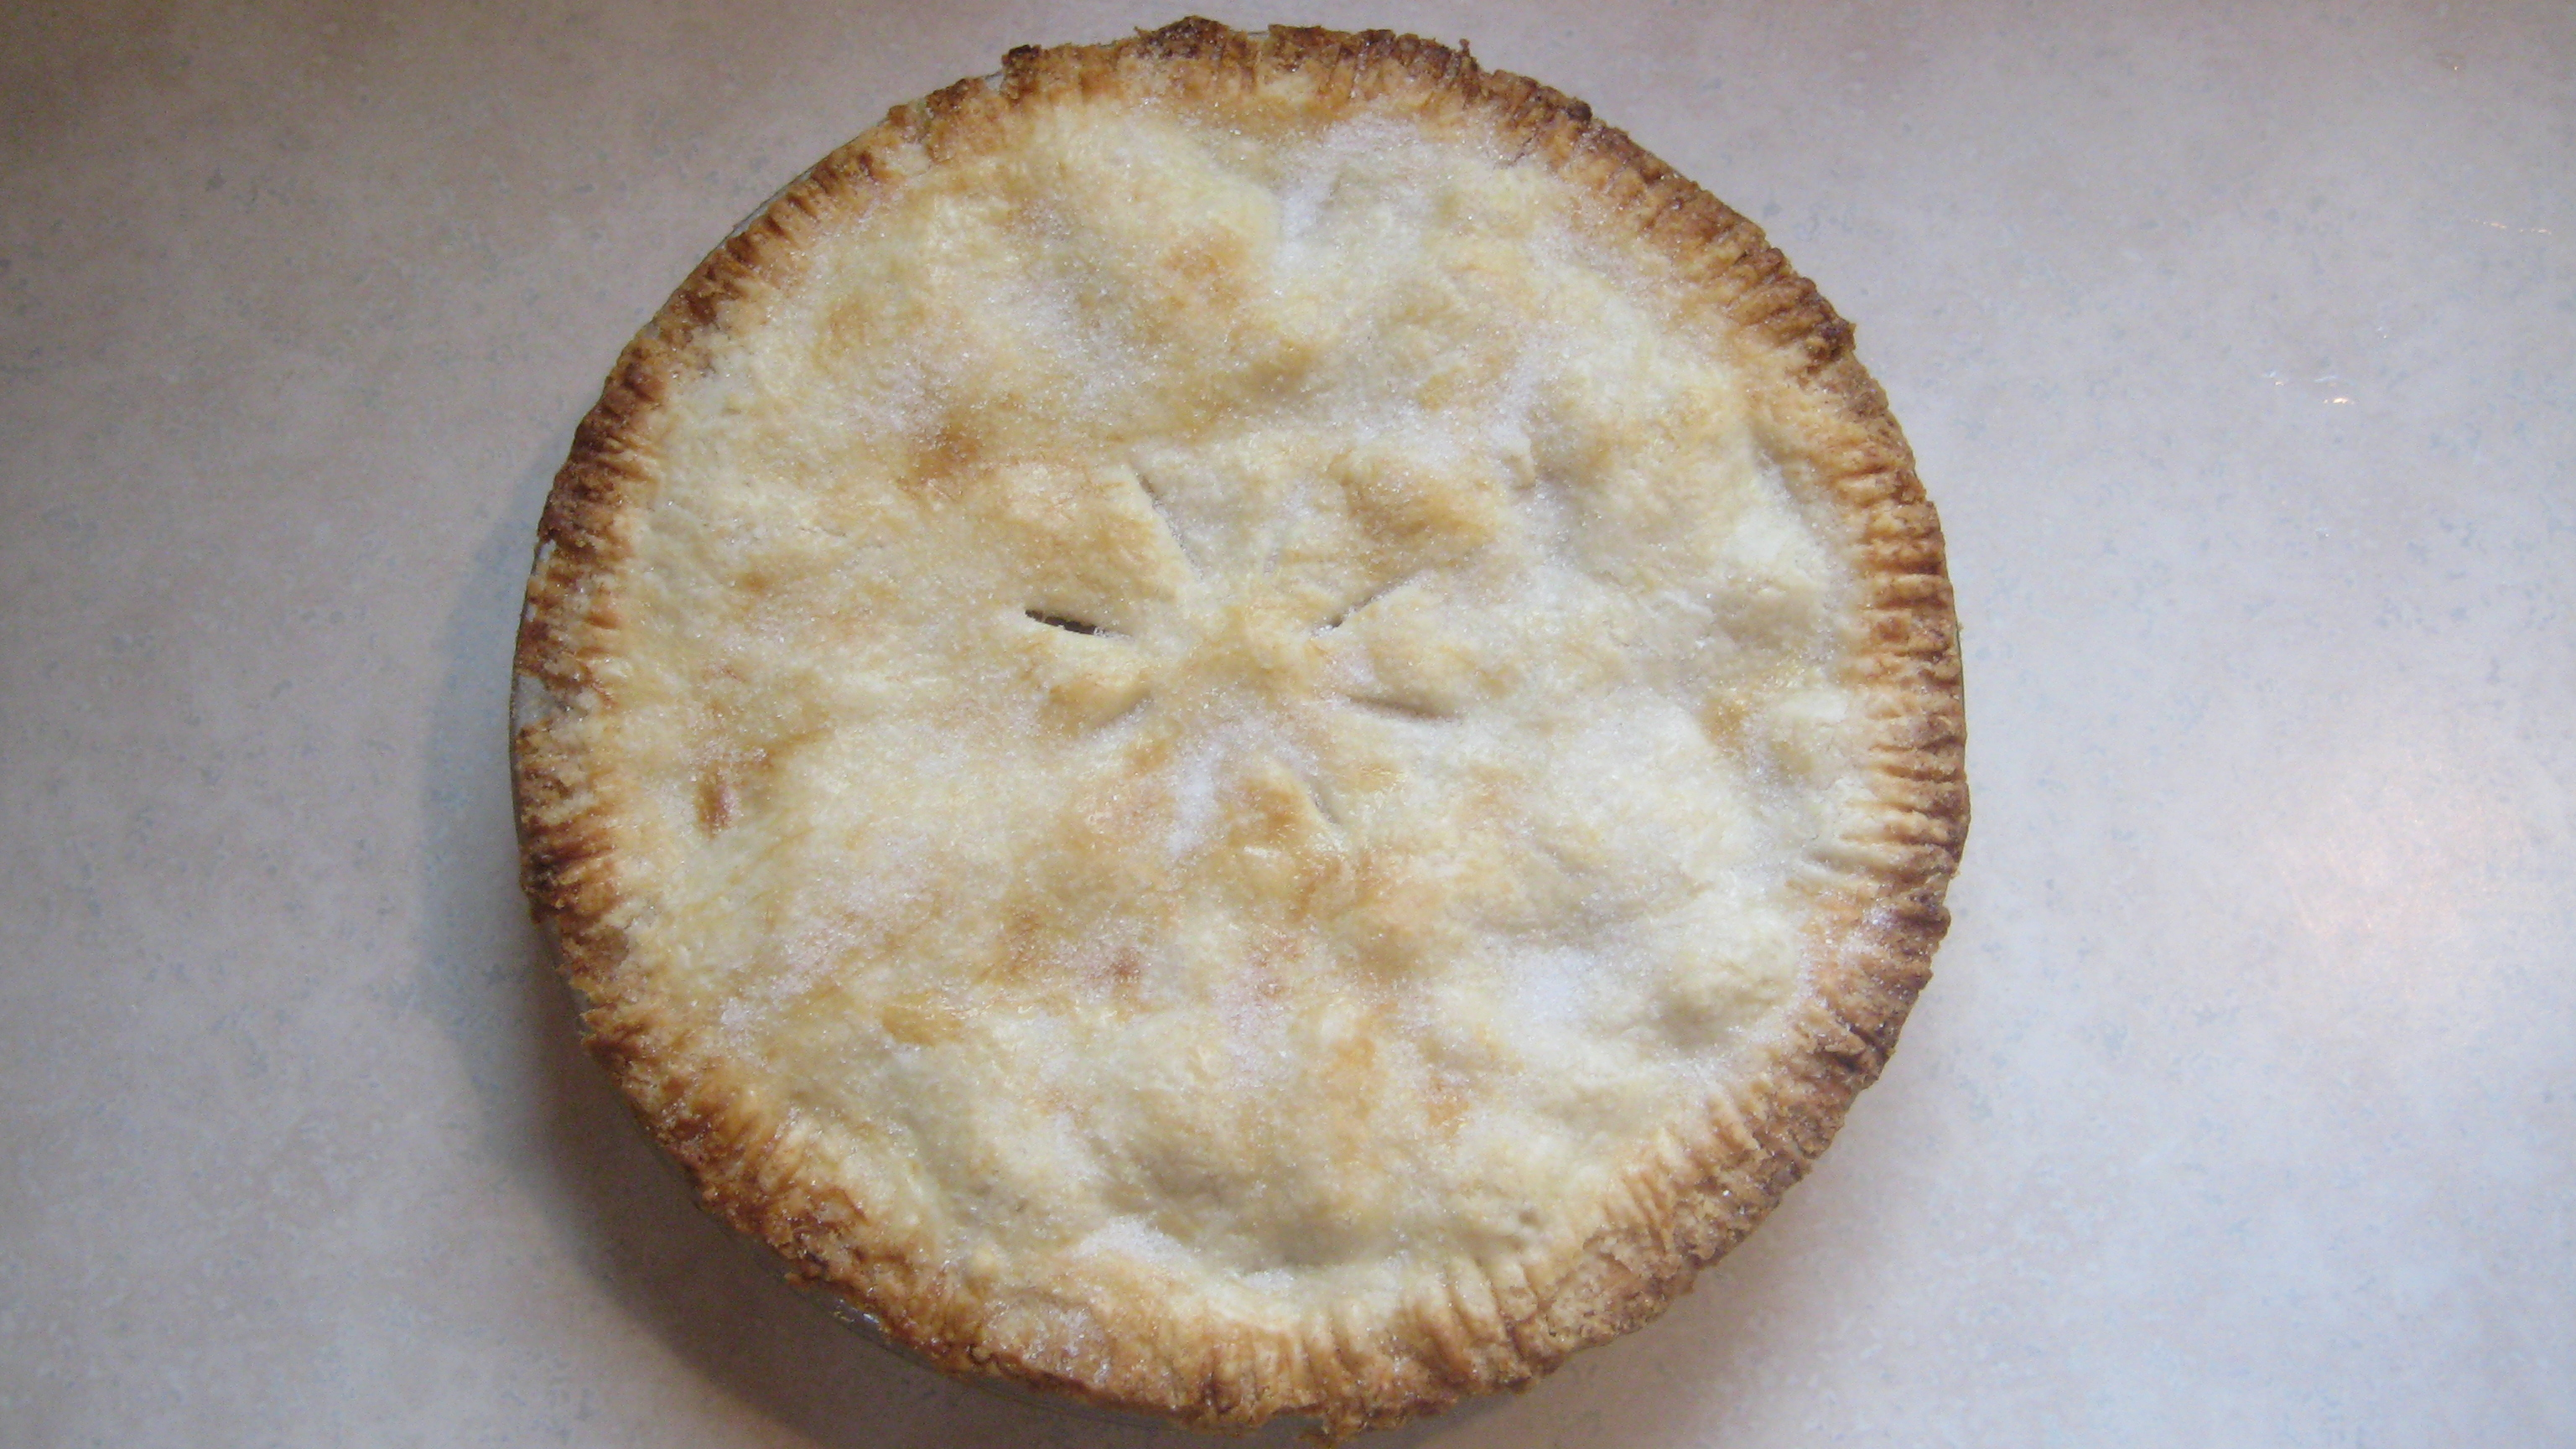 This perfect pie crust recipe makes one double pie crust or two single ...